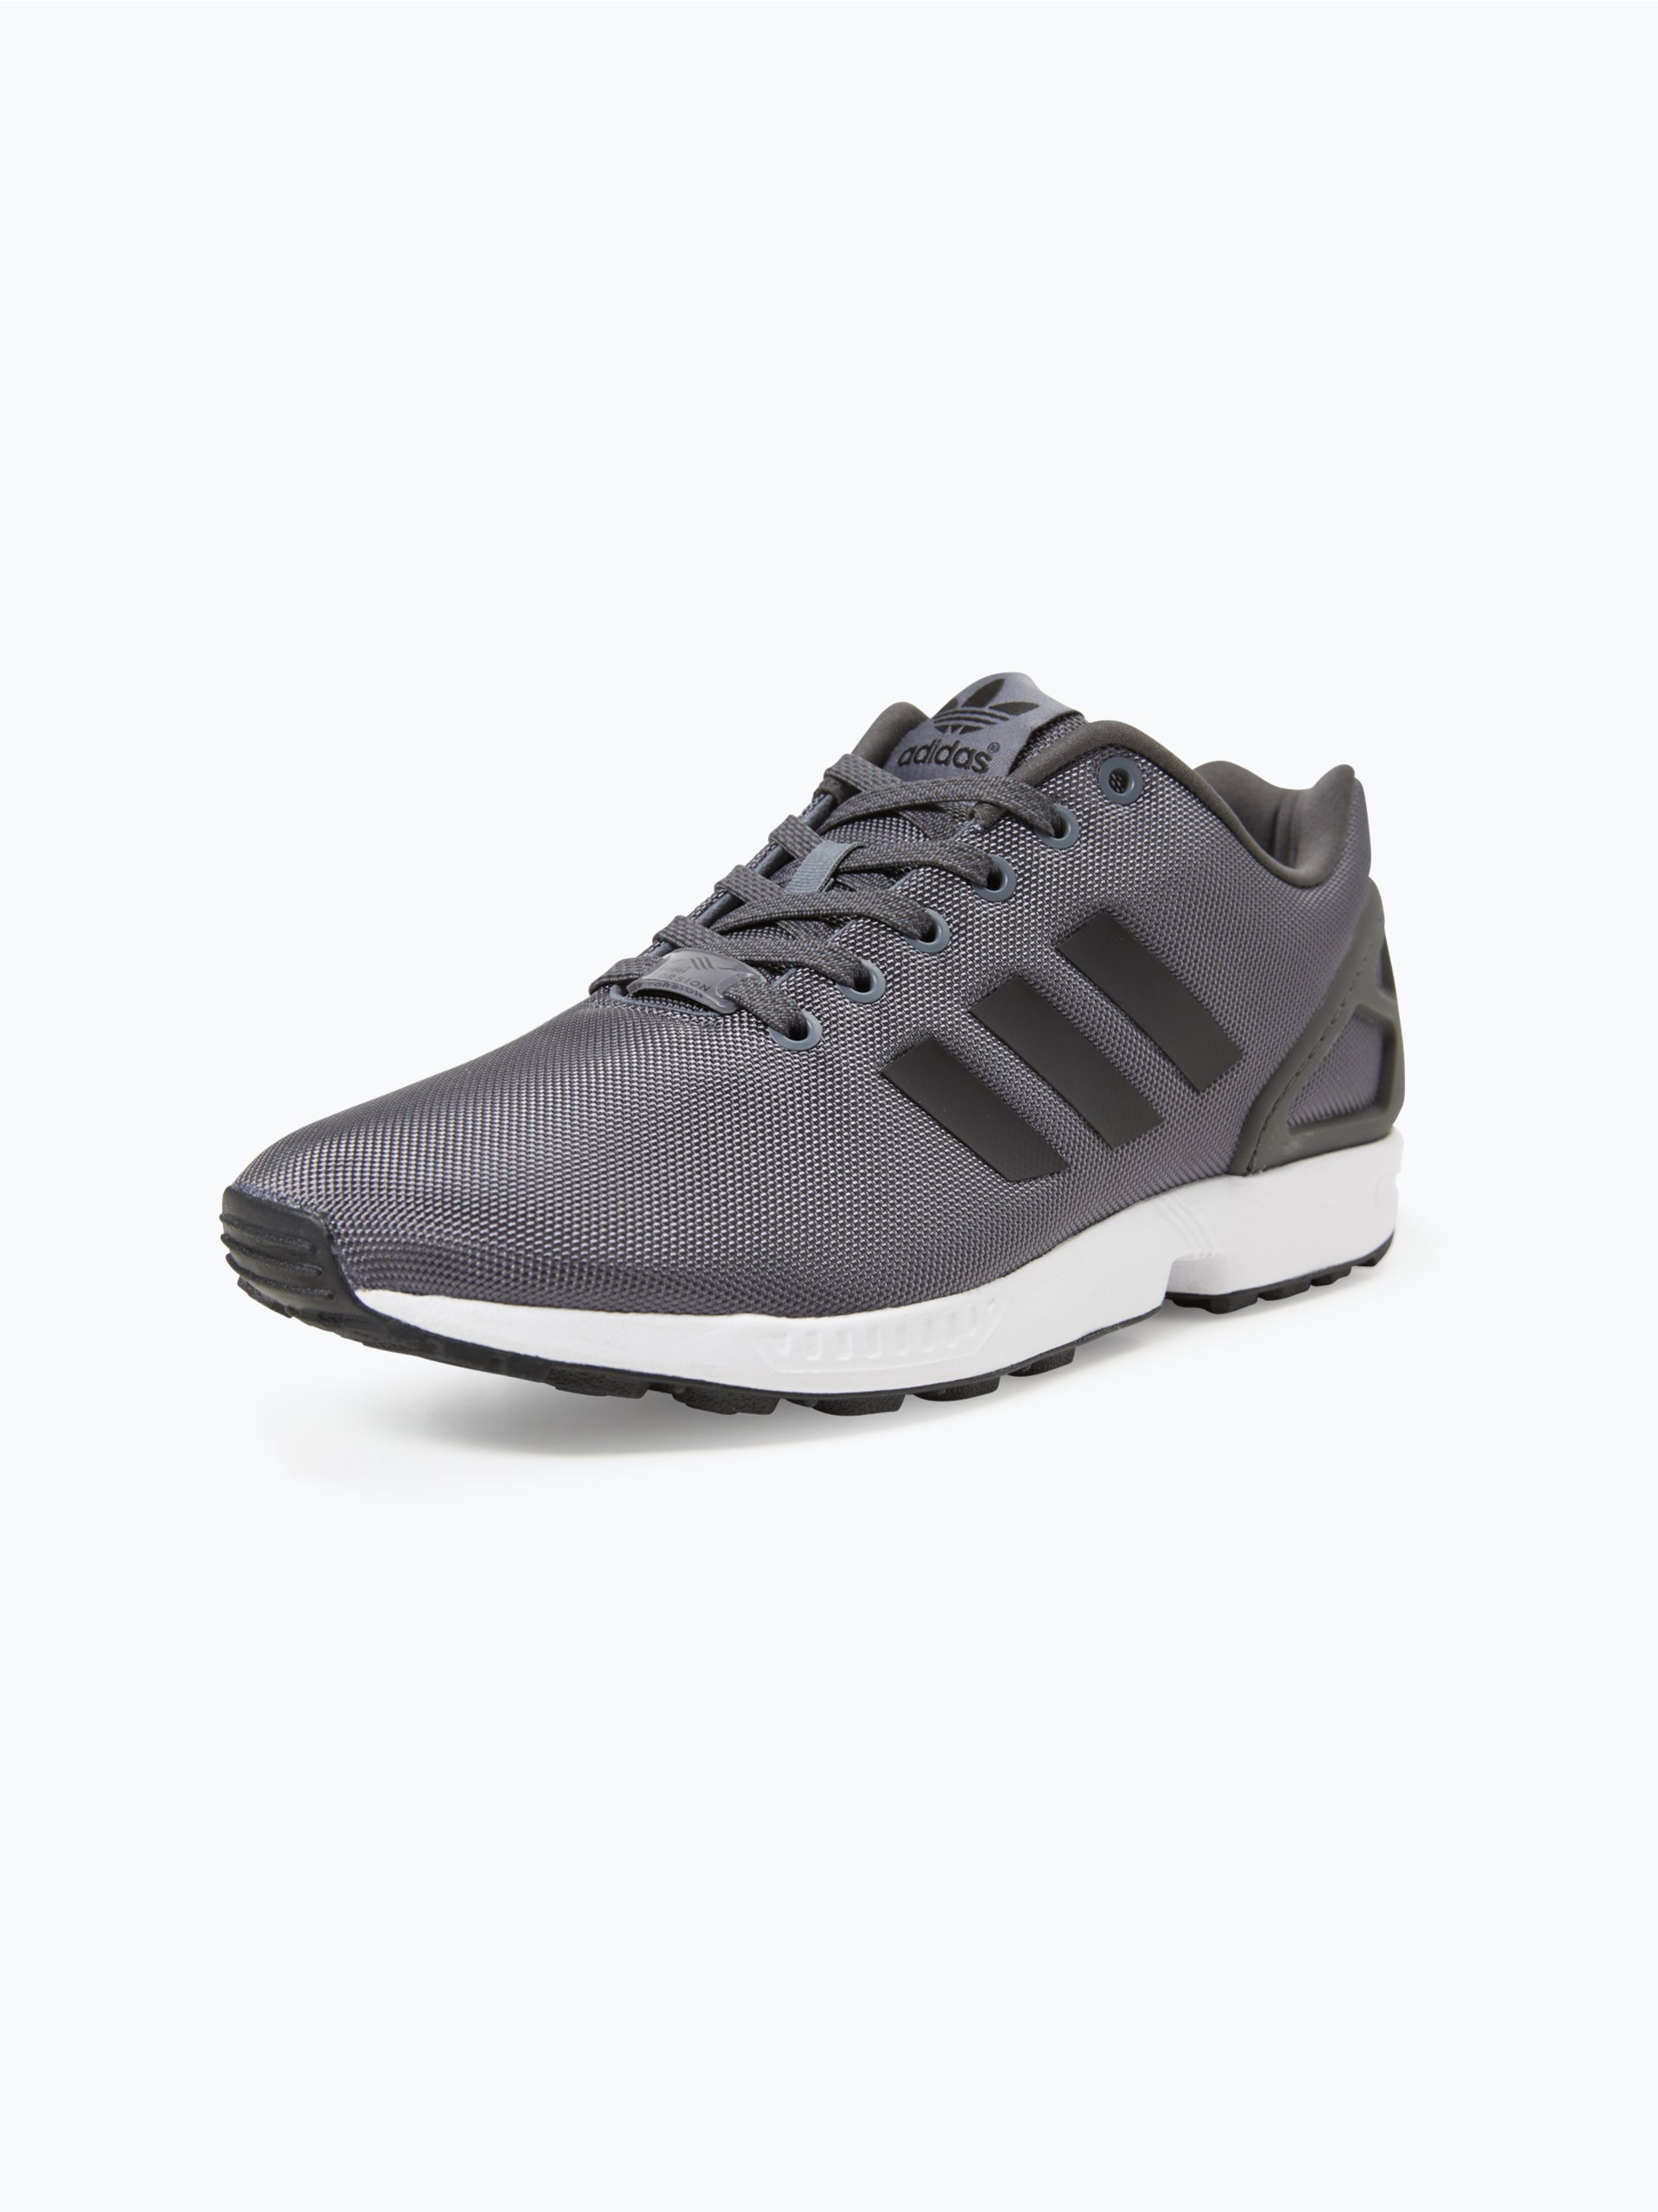 adidas originals herren sneaker zx flux anthrazit uni online kaufen peek und cloppenburg de. Black Bedroom Furniture Sets. Home Design Ideas